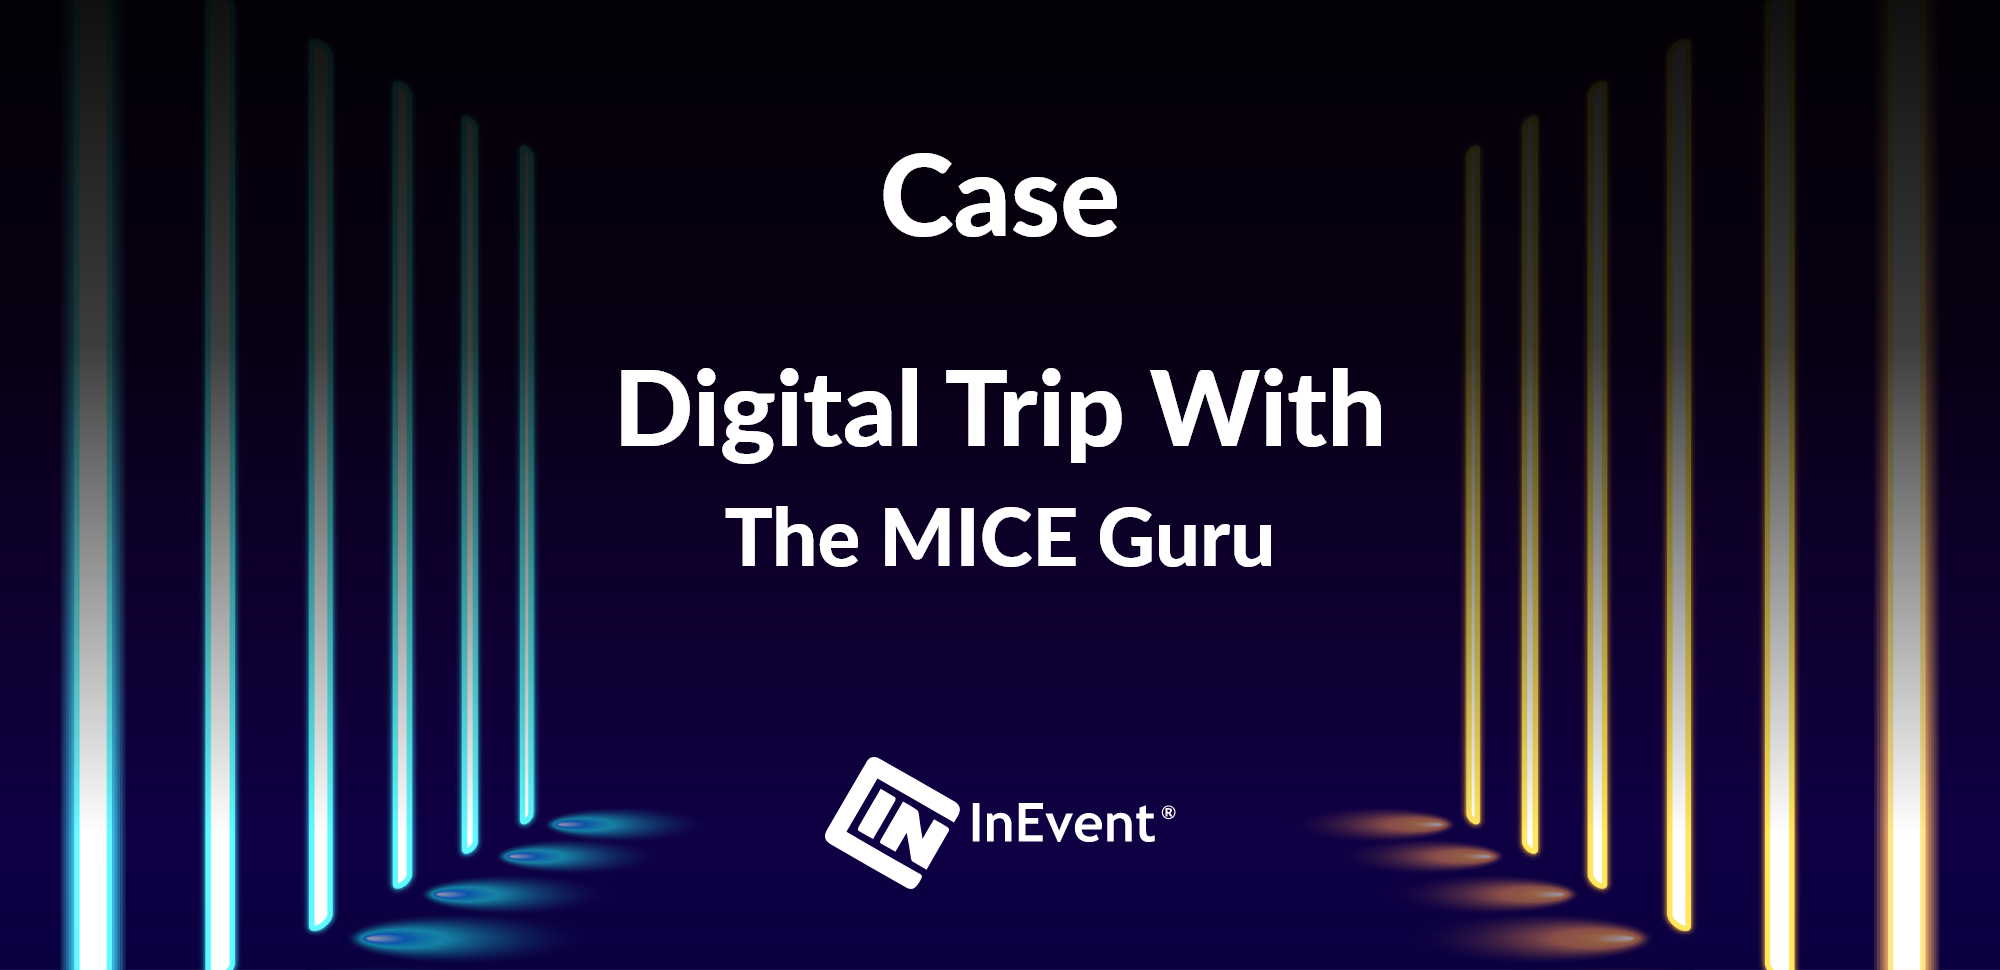 Digital Trip With The MICE Guru